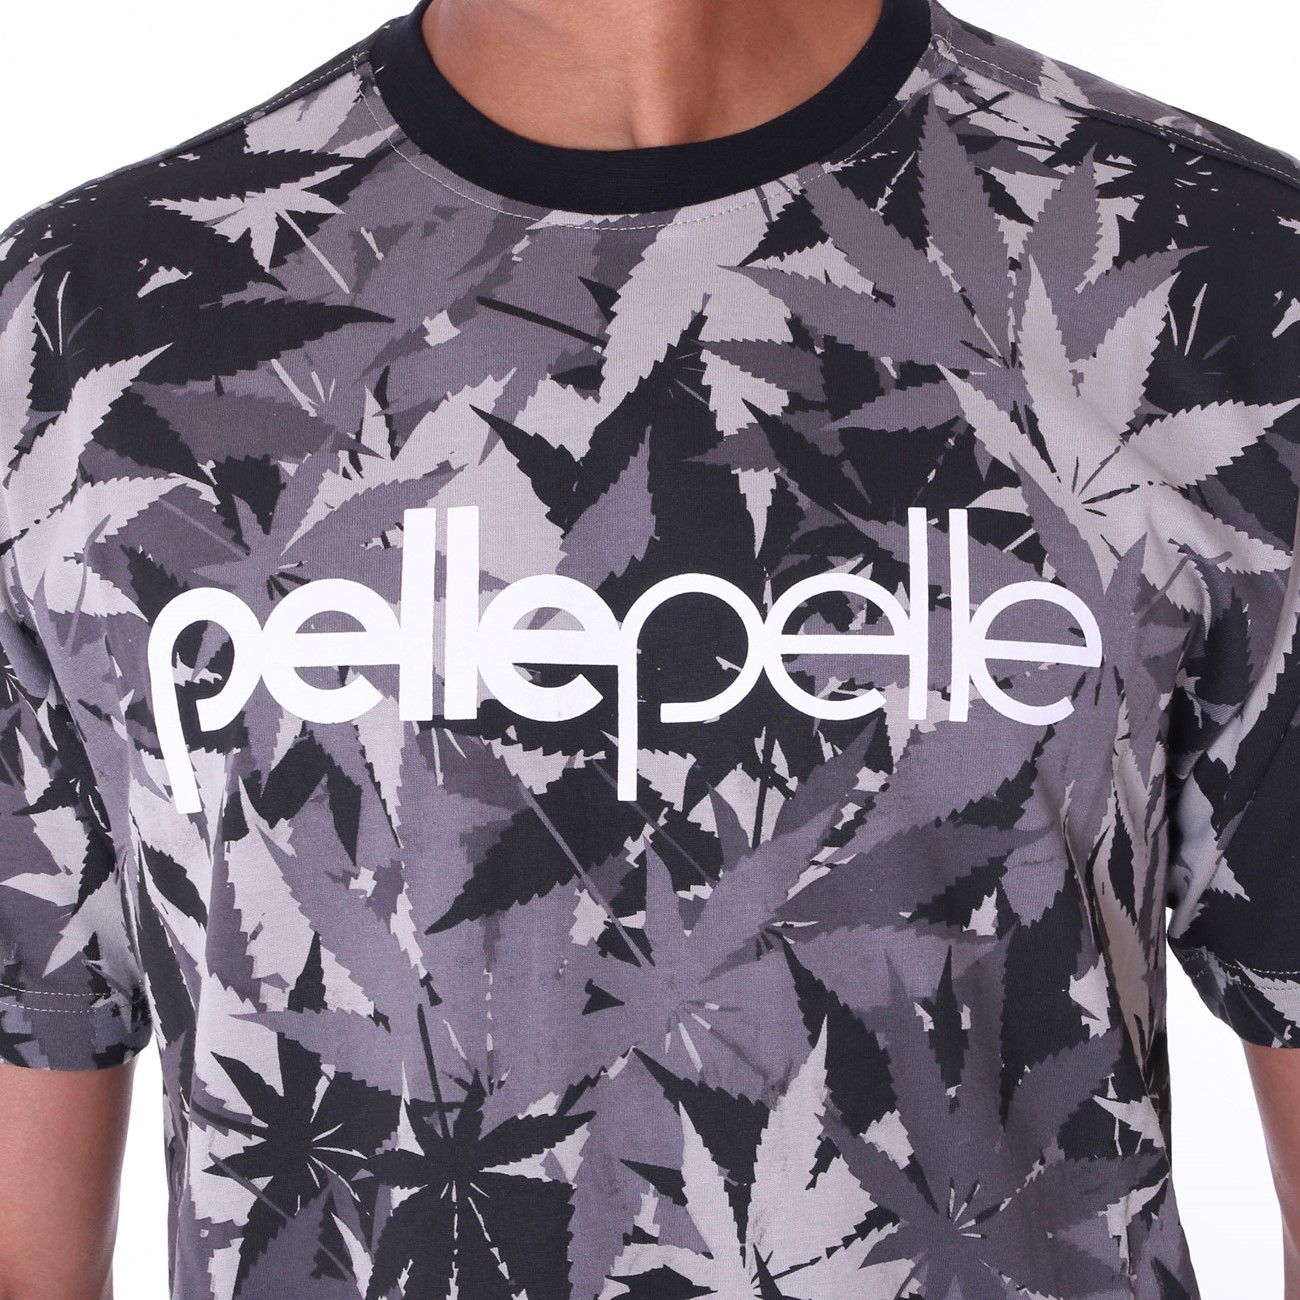 Design t shirt europe -  Pelle Pelle Corporate Dope T Shirt S S